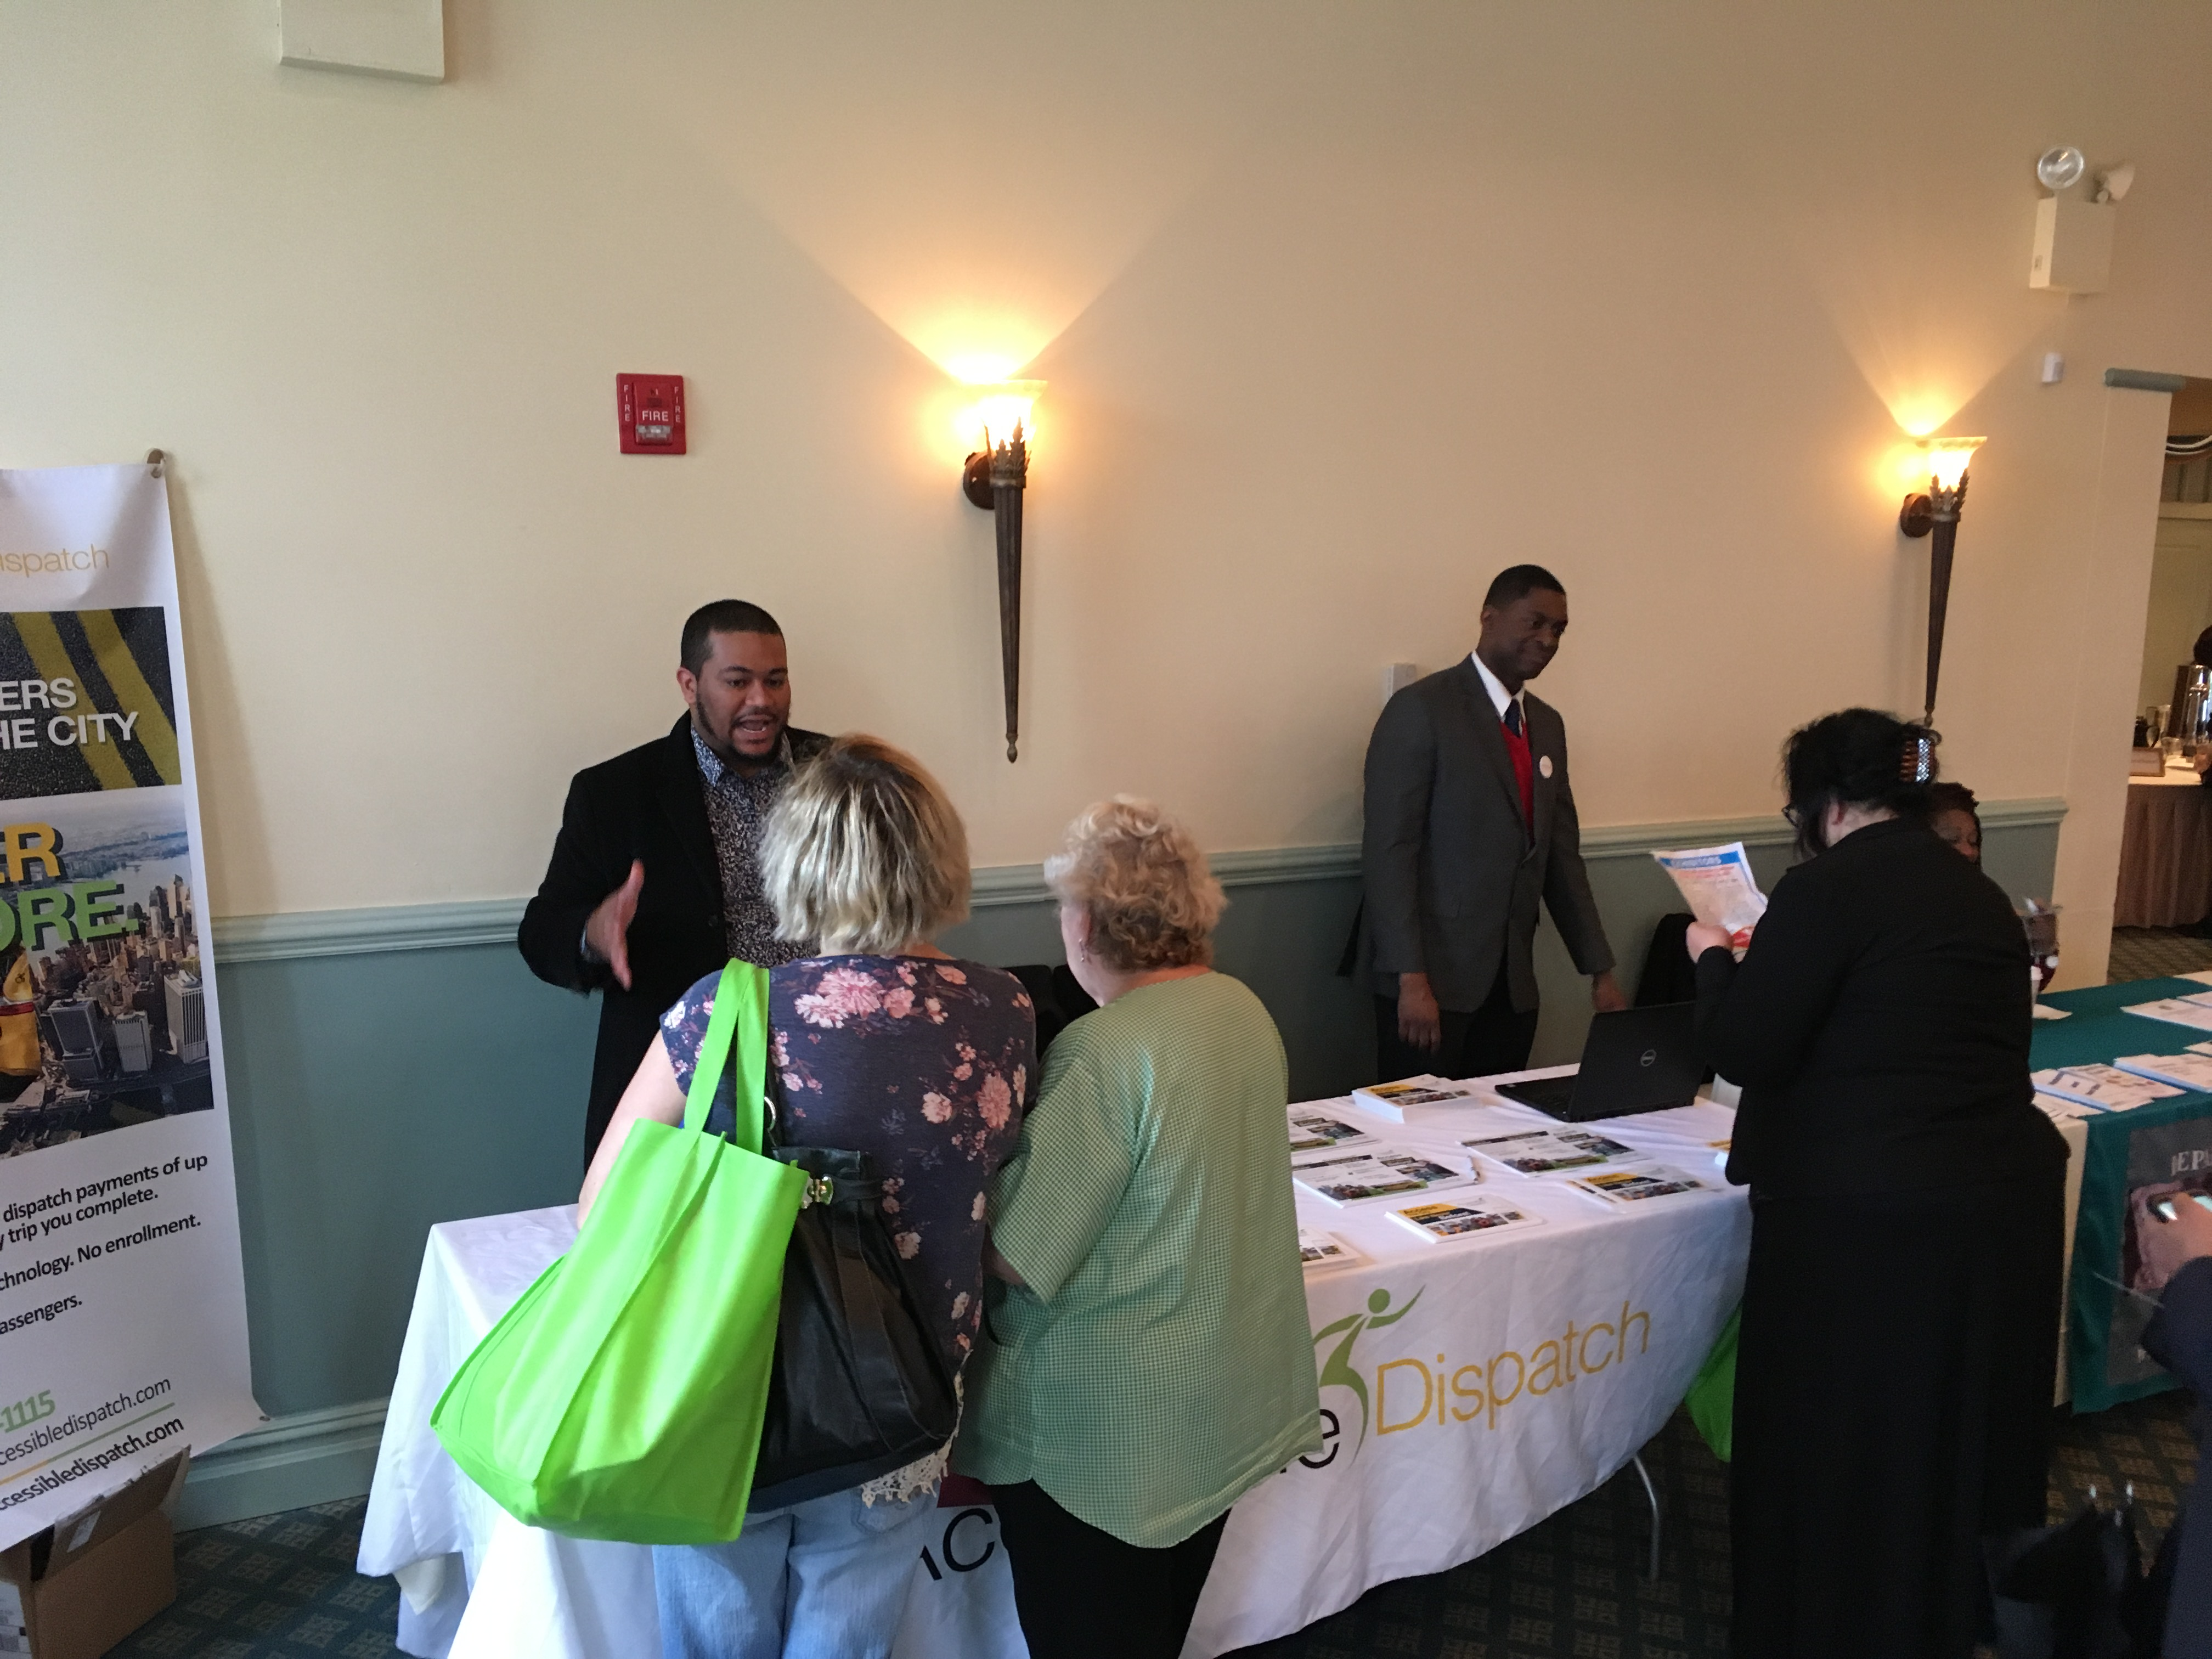 TLC Accessible Dispatch NYC outreach team members explaining the benefits of the Accessible Dispatch program to seniors at health expo